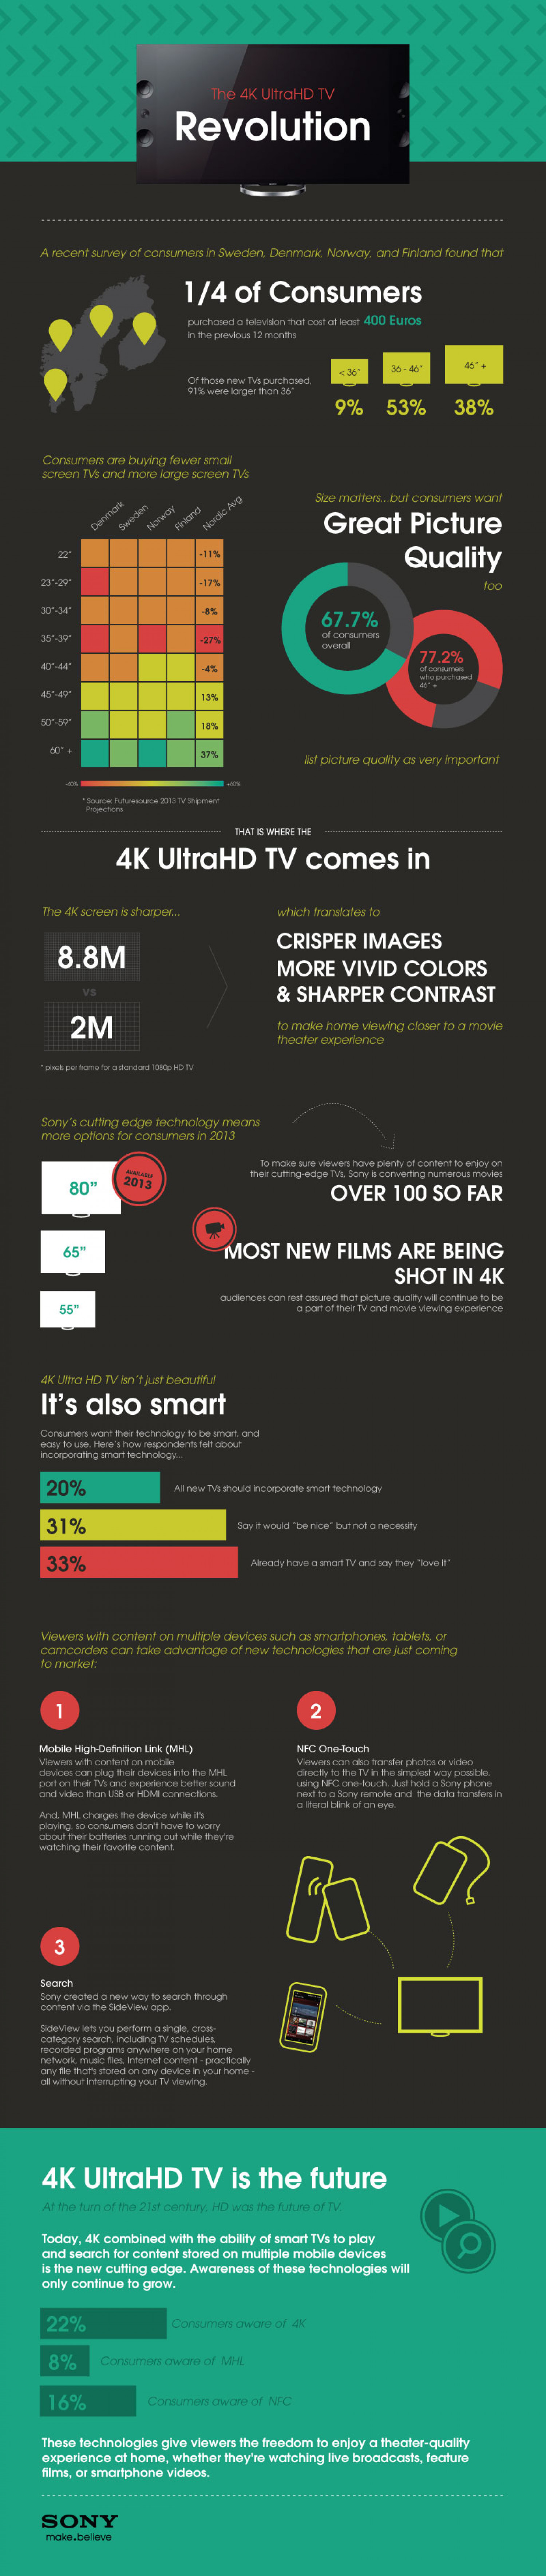 Sony and the future of TV Infographic